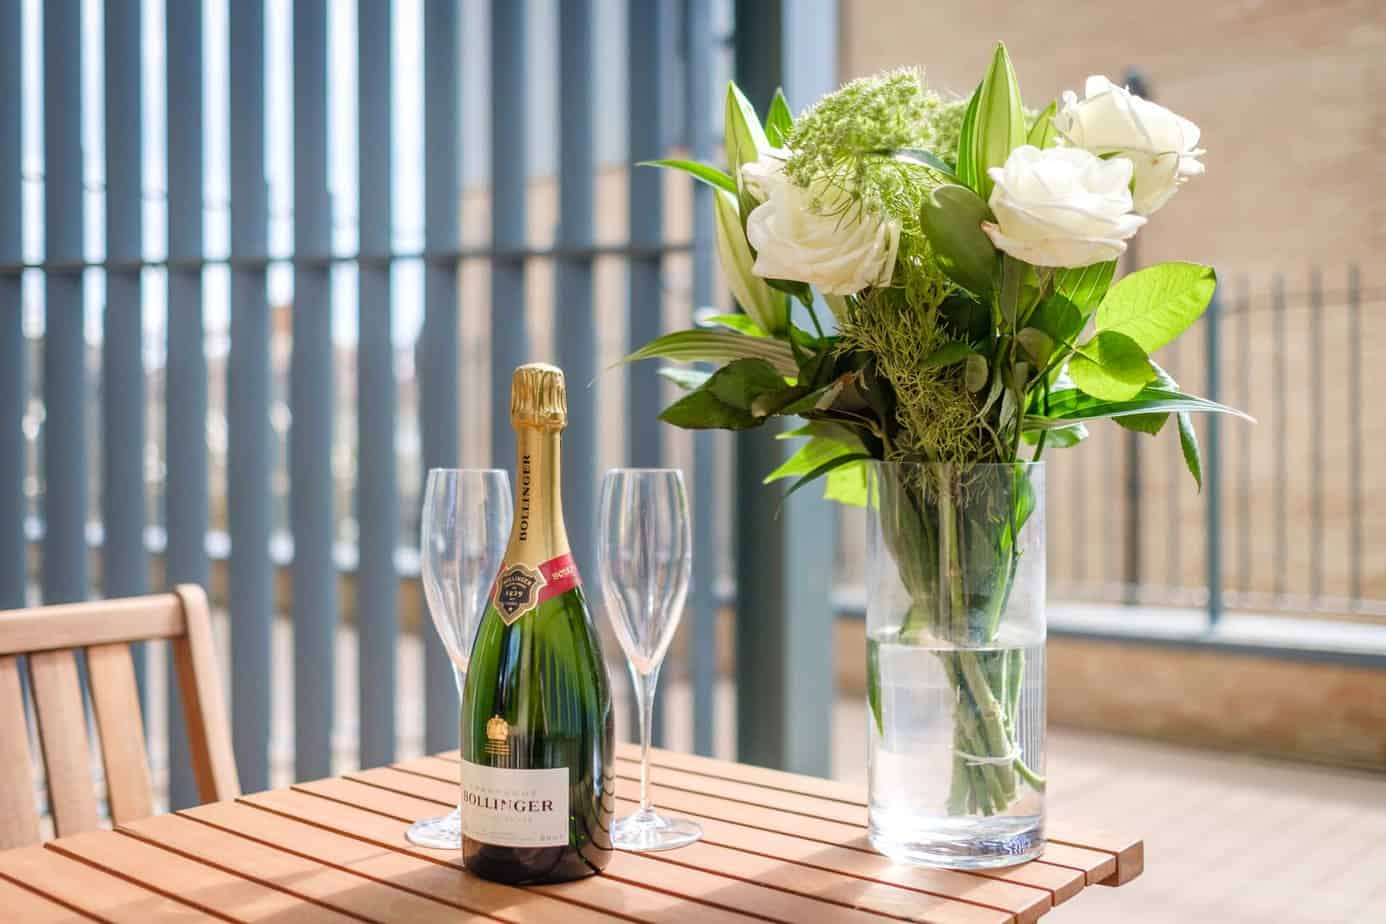 Tailored Stays Flamsteed serviced apartment balcony